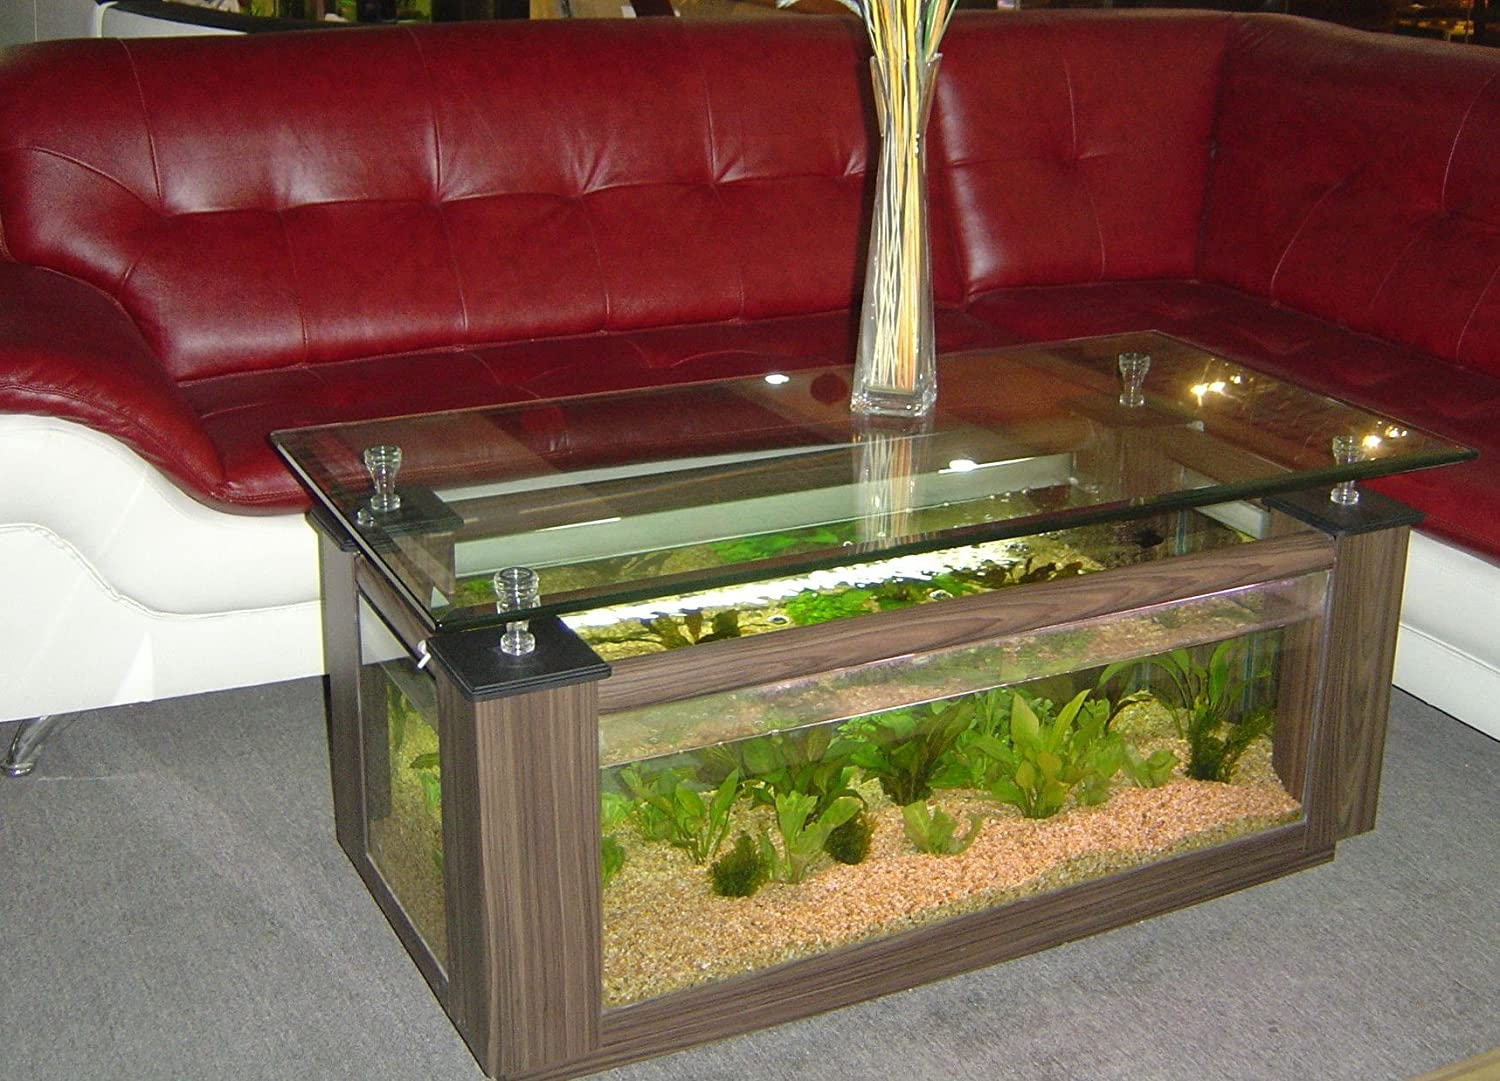 Amazon Com 48gl Rectangular Coffee Table Aquarium With Pump Light Filter And Completely Fish Ready Kitchen Dining